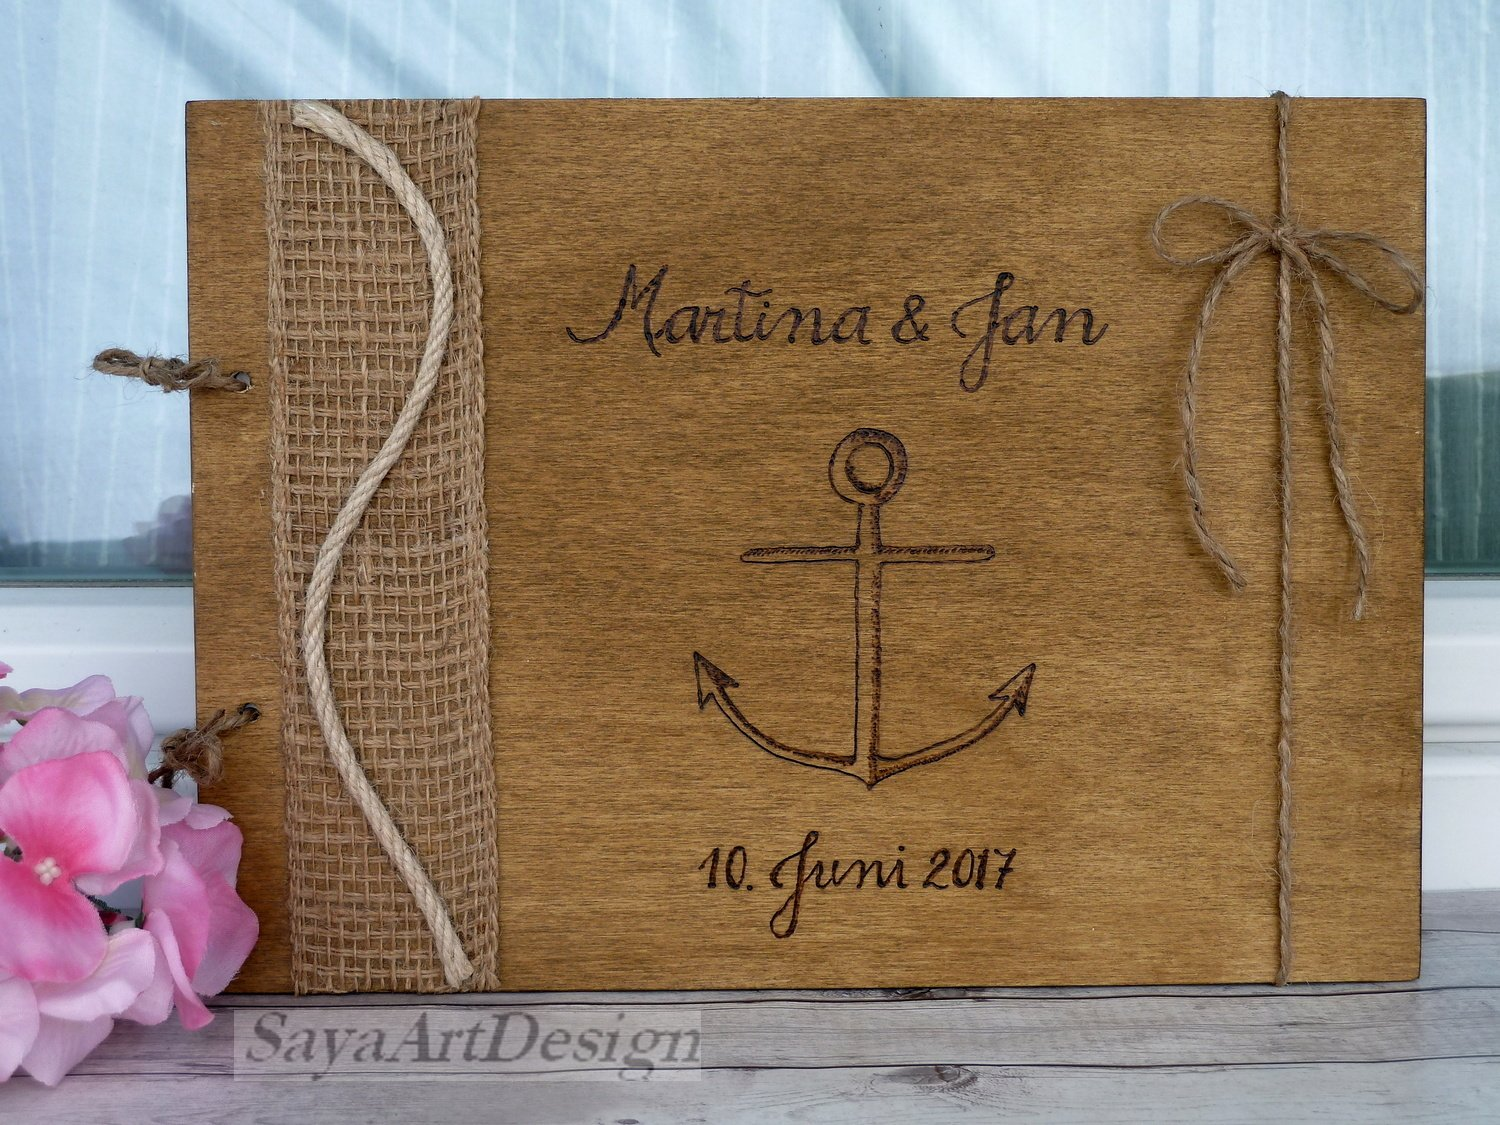 Nautical Wedding Guest Book 70 Sheets. Engraved Wooden Advice Book. Wedding Gift